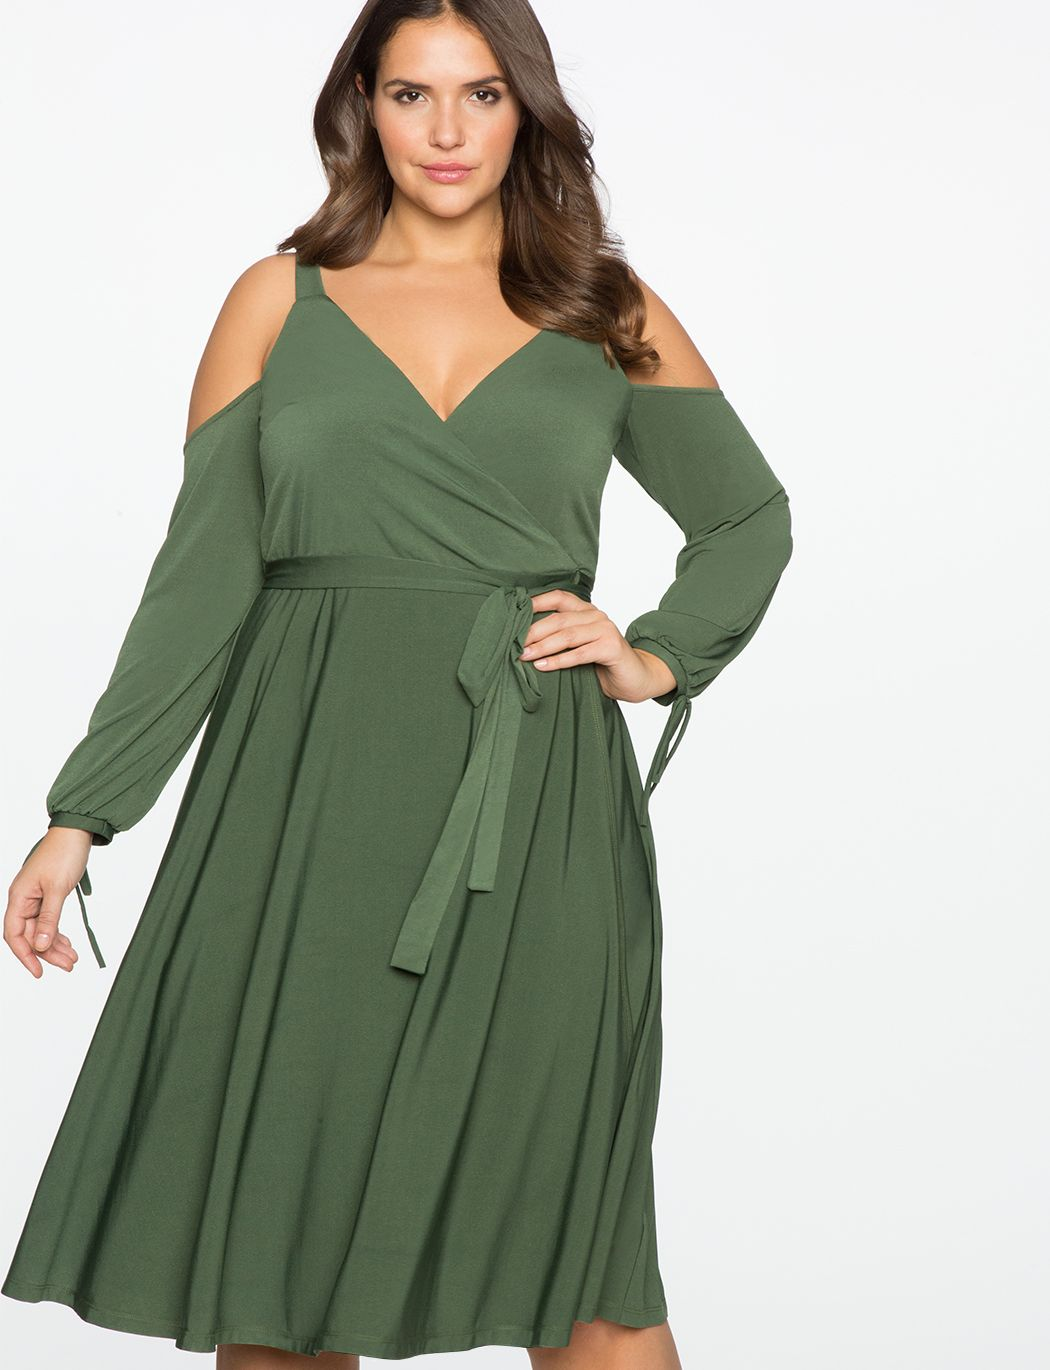 Cold Shoulder Wrap Dress | Women\'s Plus Size Dresses in 2019 ...